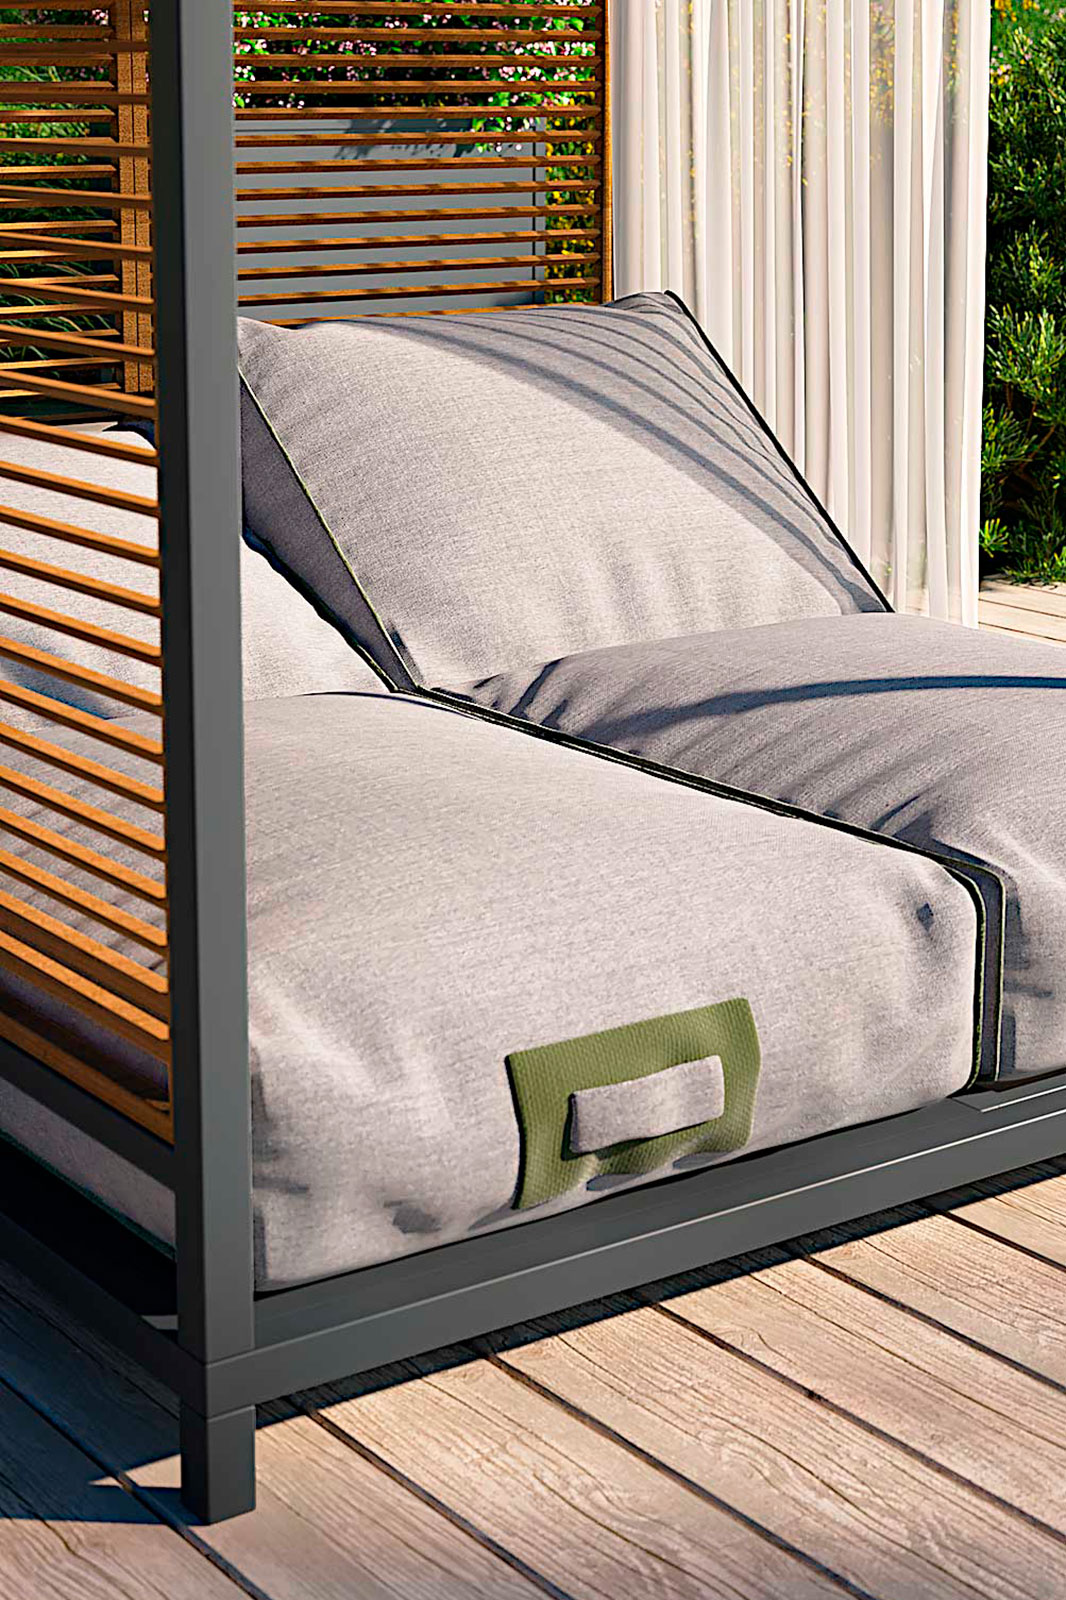 Outdoor daybed with filtering ceiling for a perfect twilight. Aluminium frame, Sunbrella and Tempotest coverings, reclining backrests. Free home delivery.